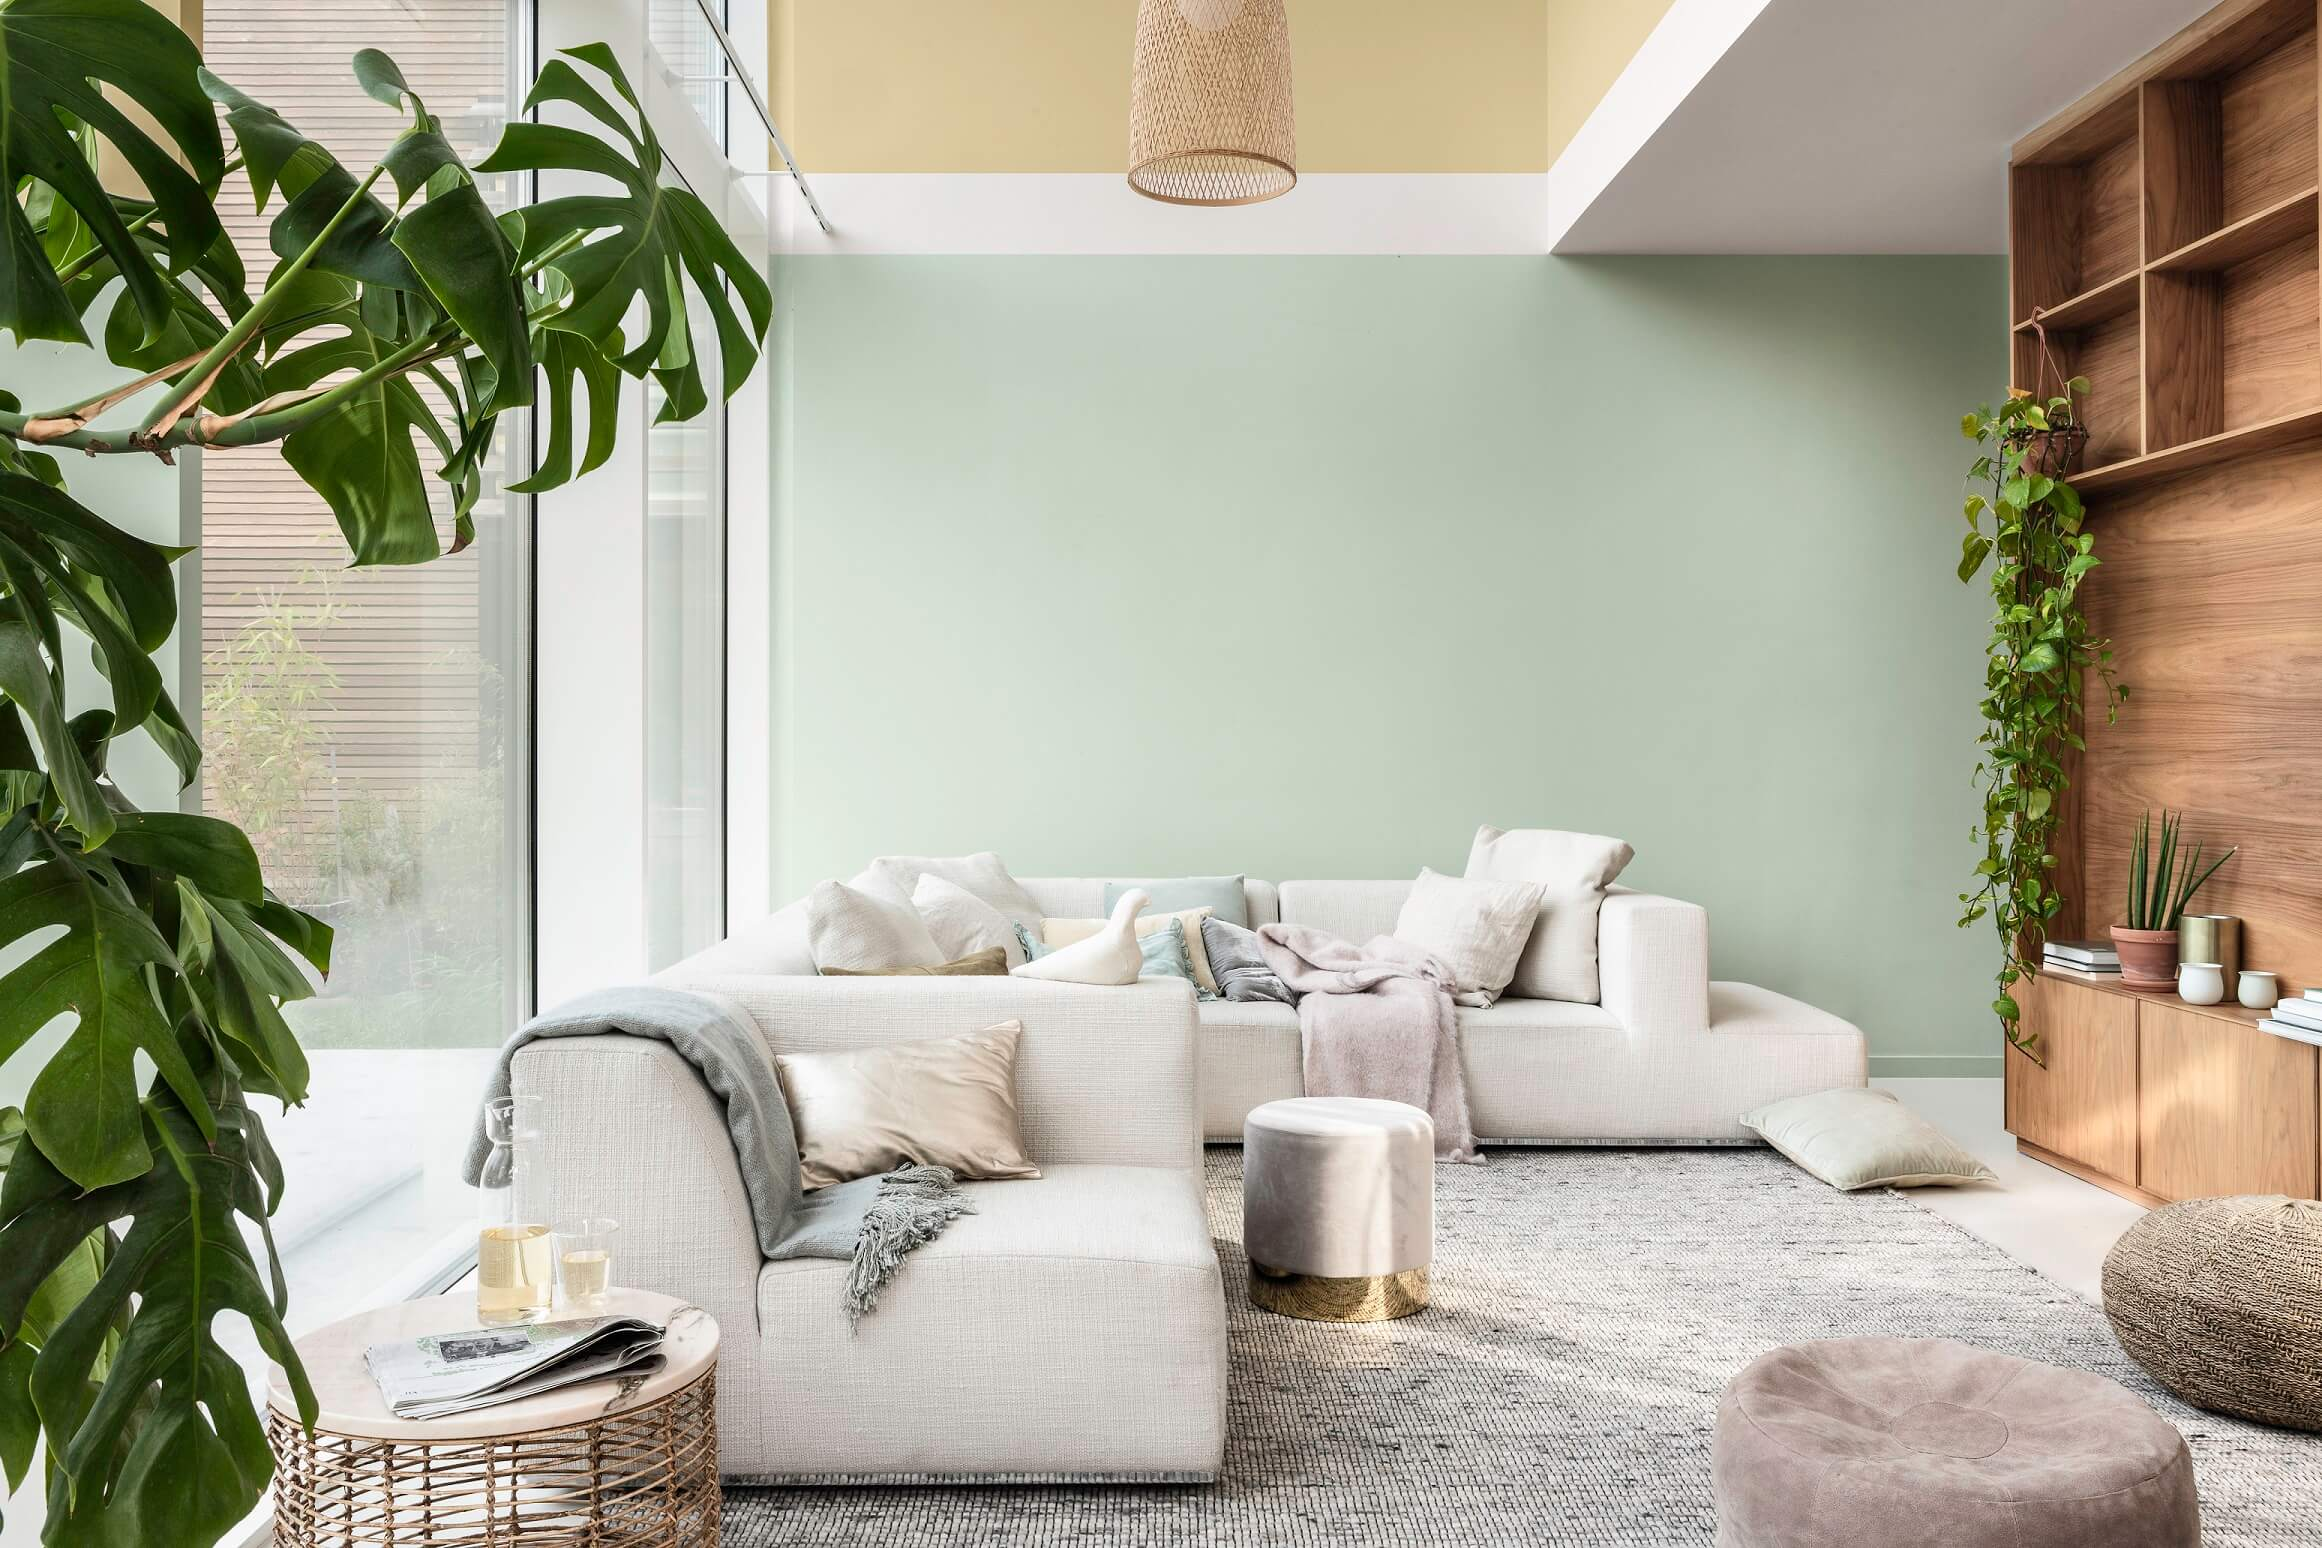 Dulux-Colour-Futures-Colour-of-the-Year-2020-A-home-for-care-Livingroom-Inspiration-Global-63P